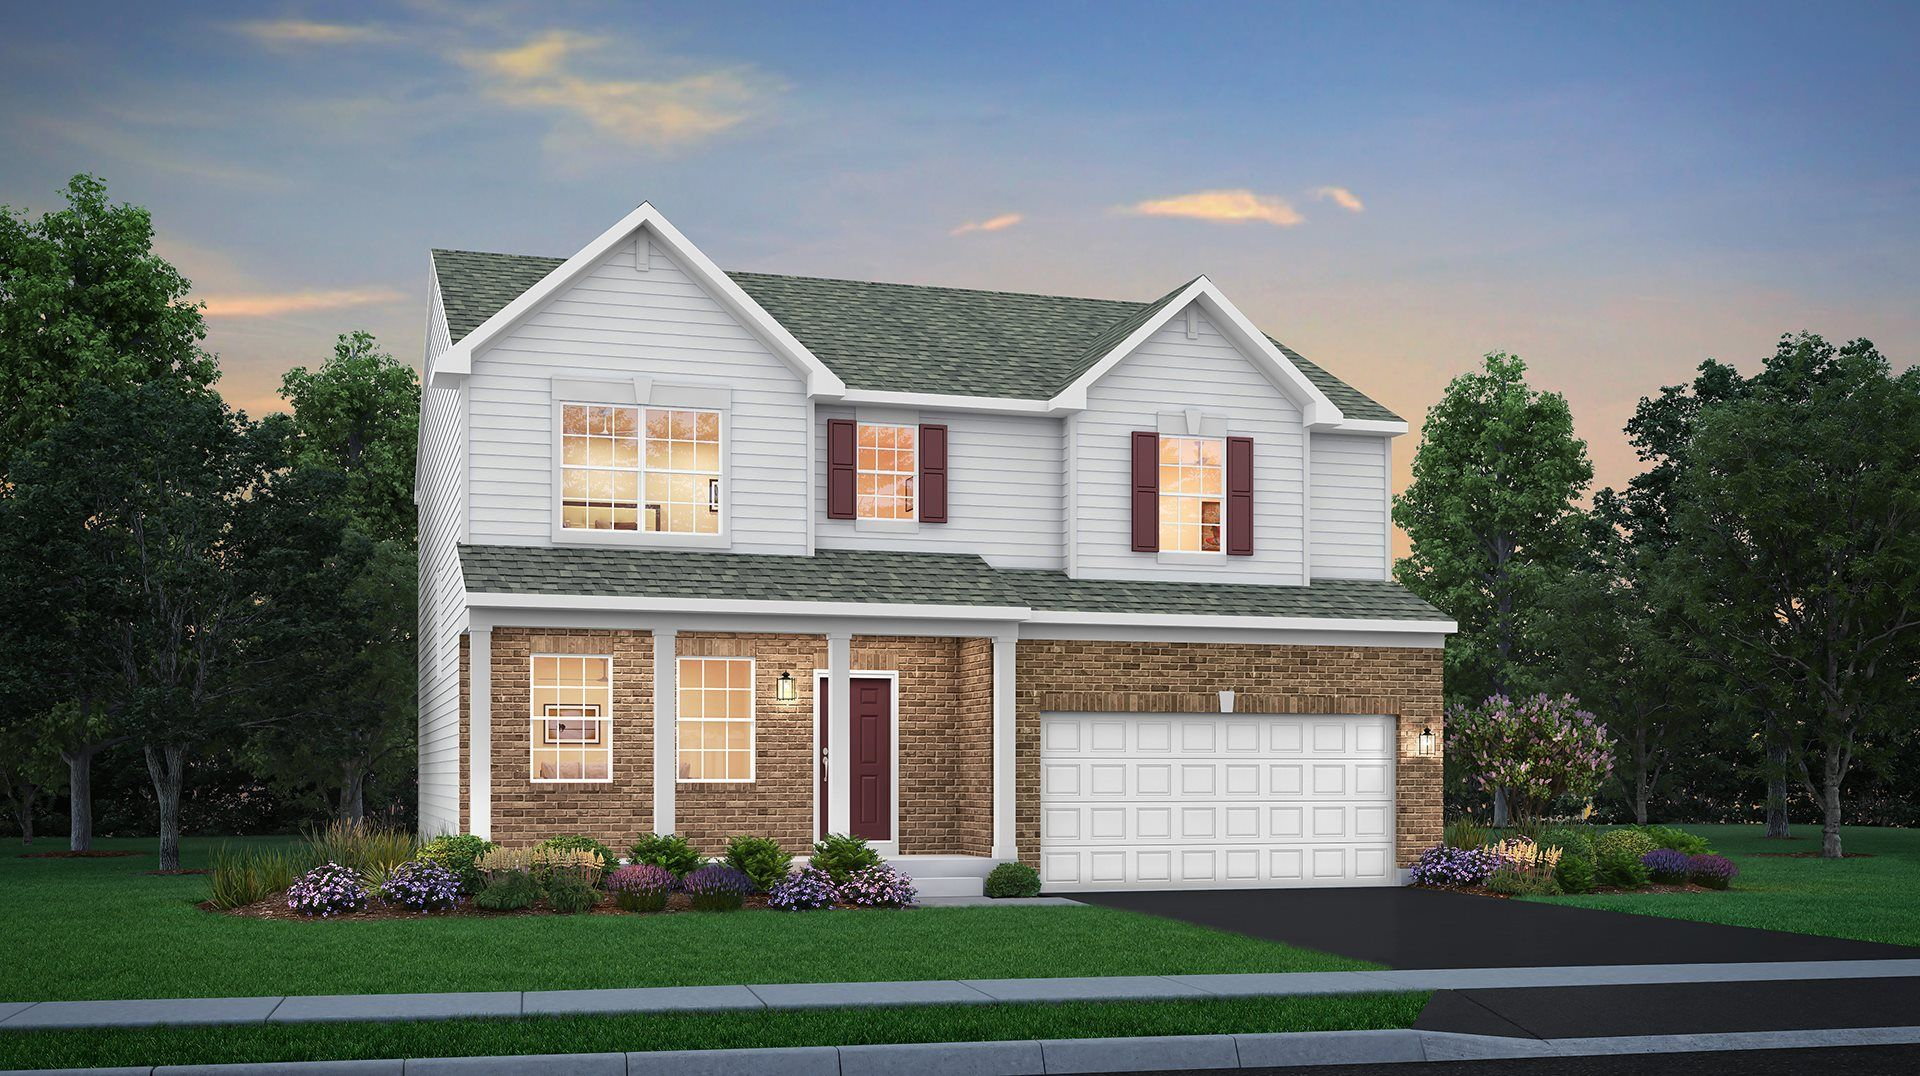 Greywall Club Single Family Townsend Elevation D